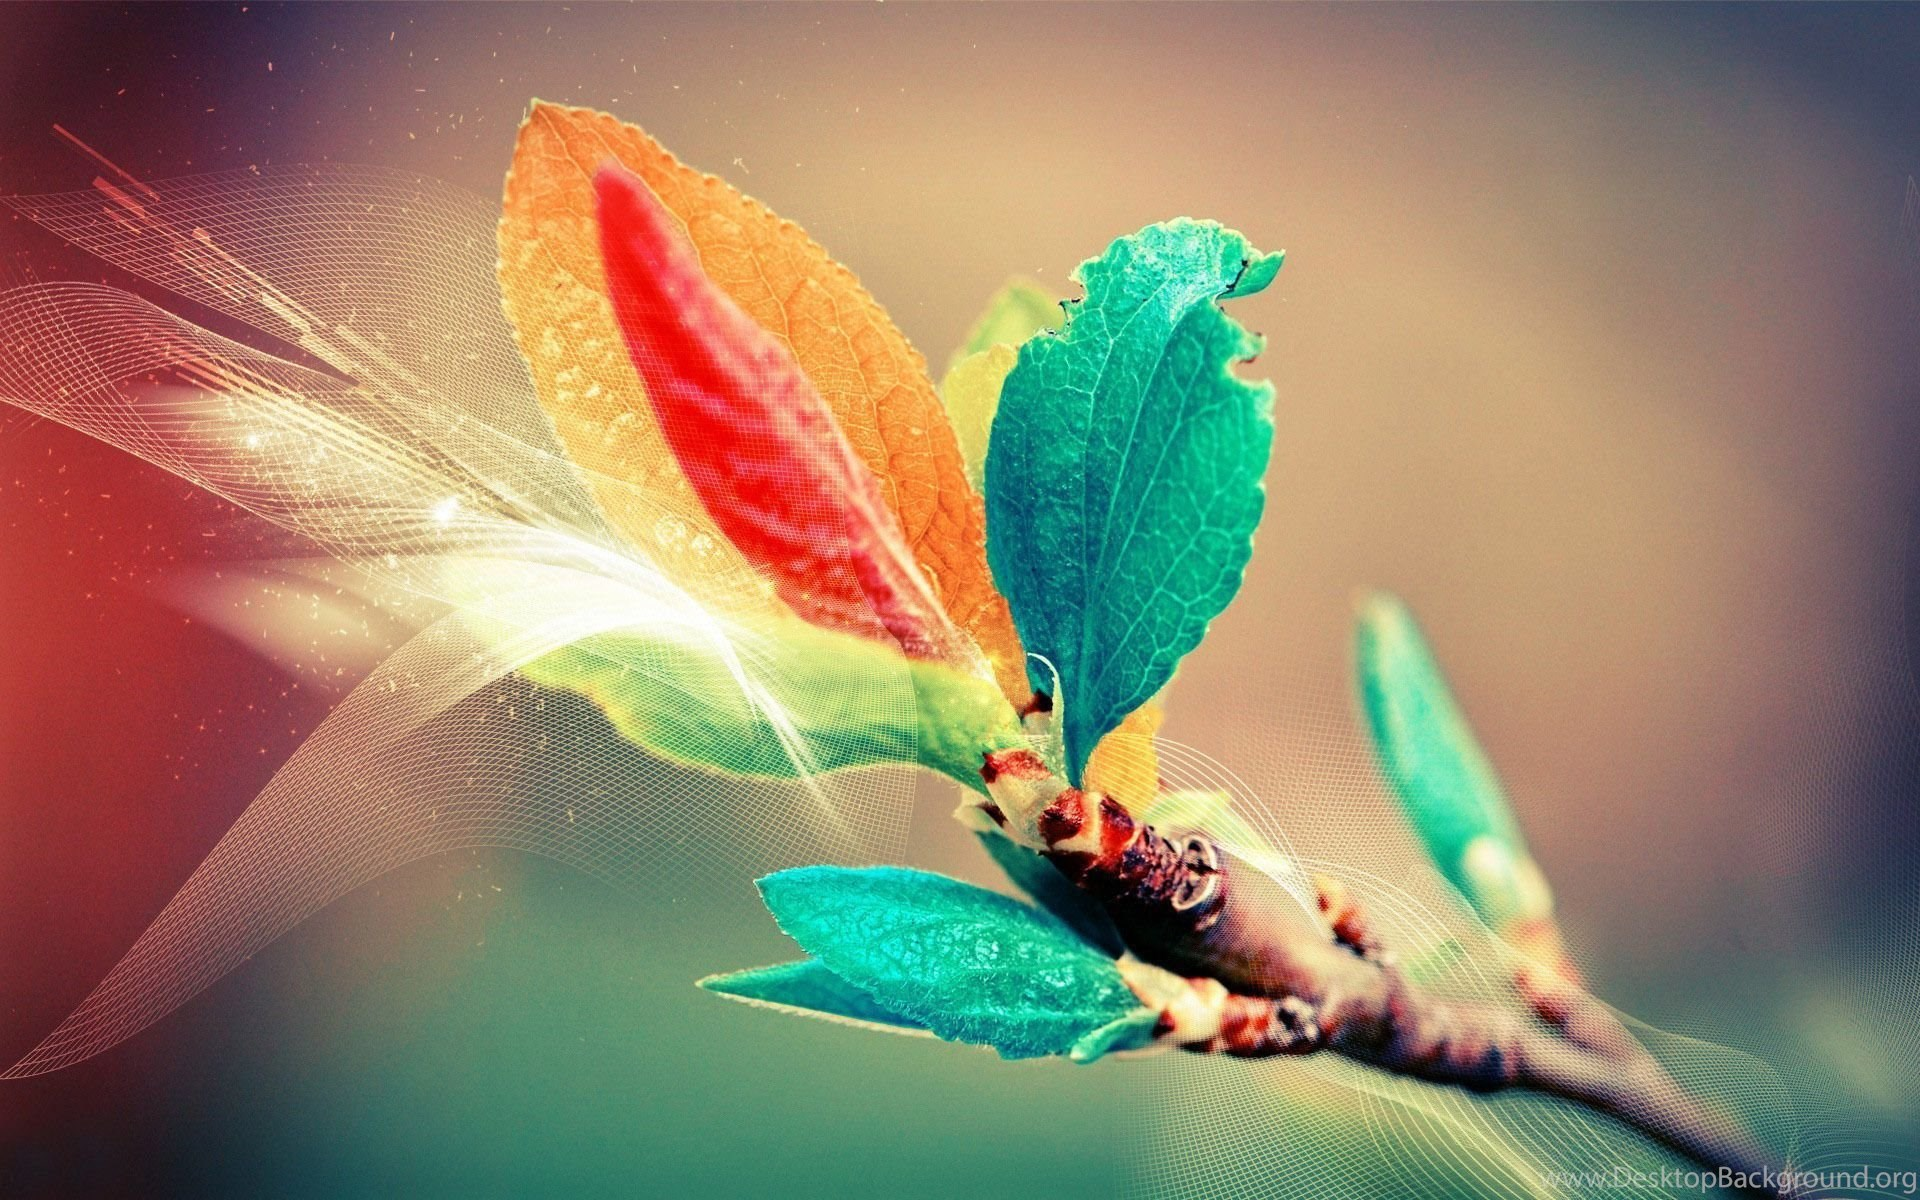 Top Colorful Leaves Wallpapers And Images For Pinterest Desktop